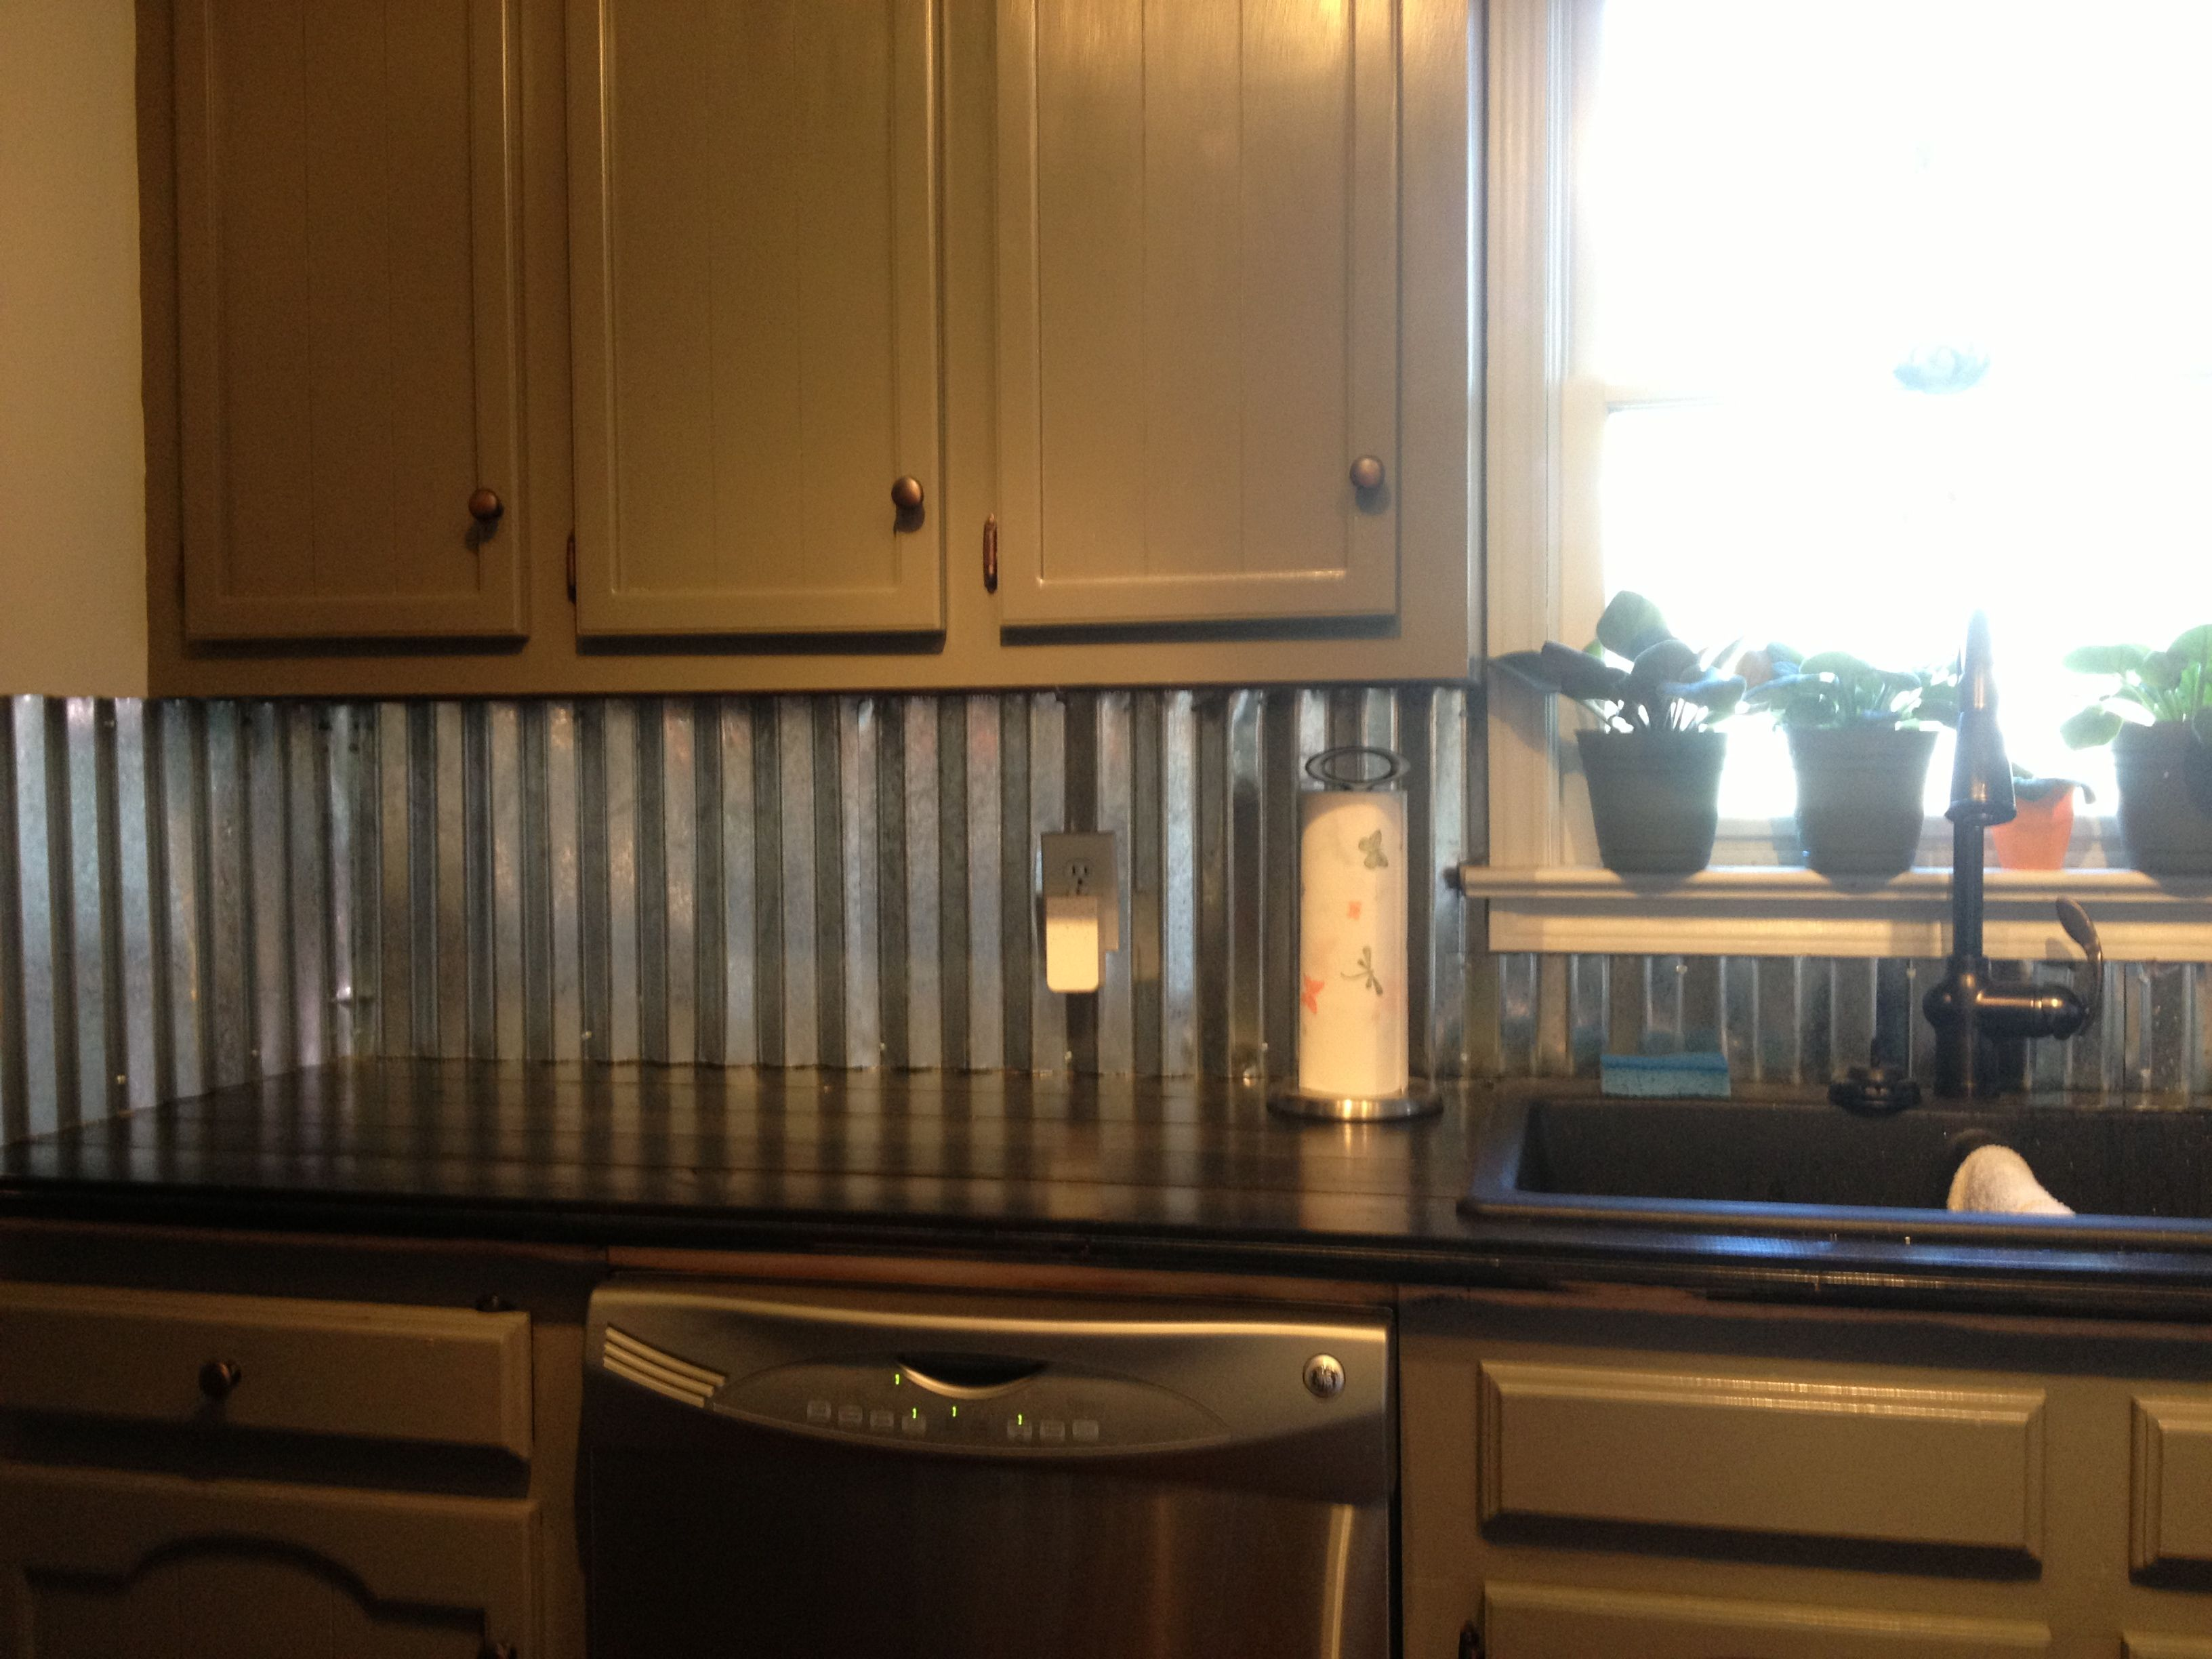 Corrugated metal backsplash Kitchen counter tops Pinterest